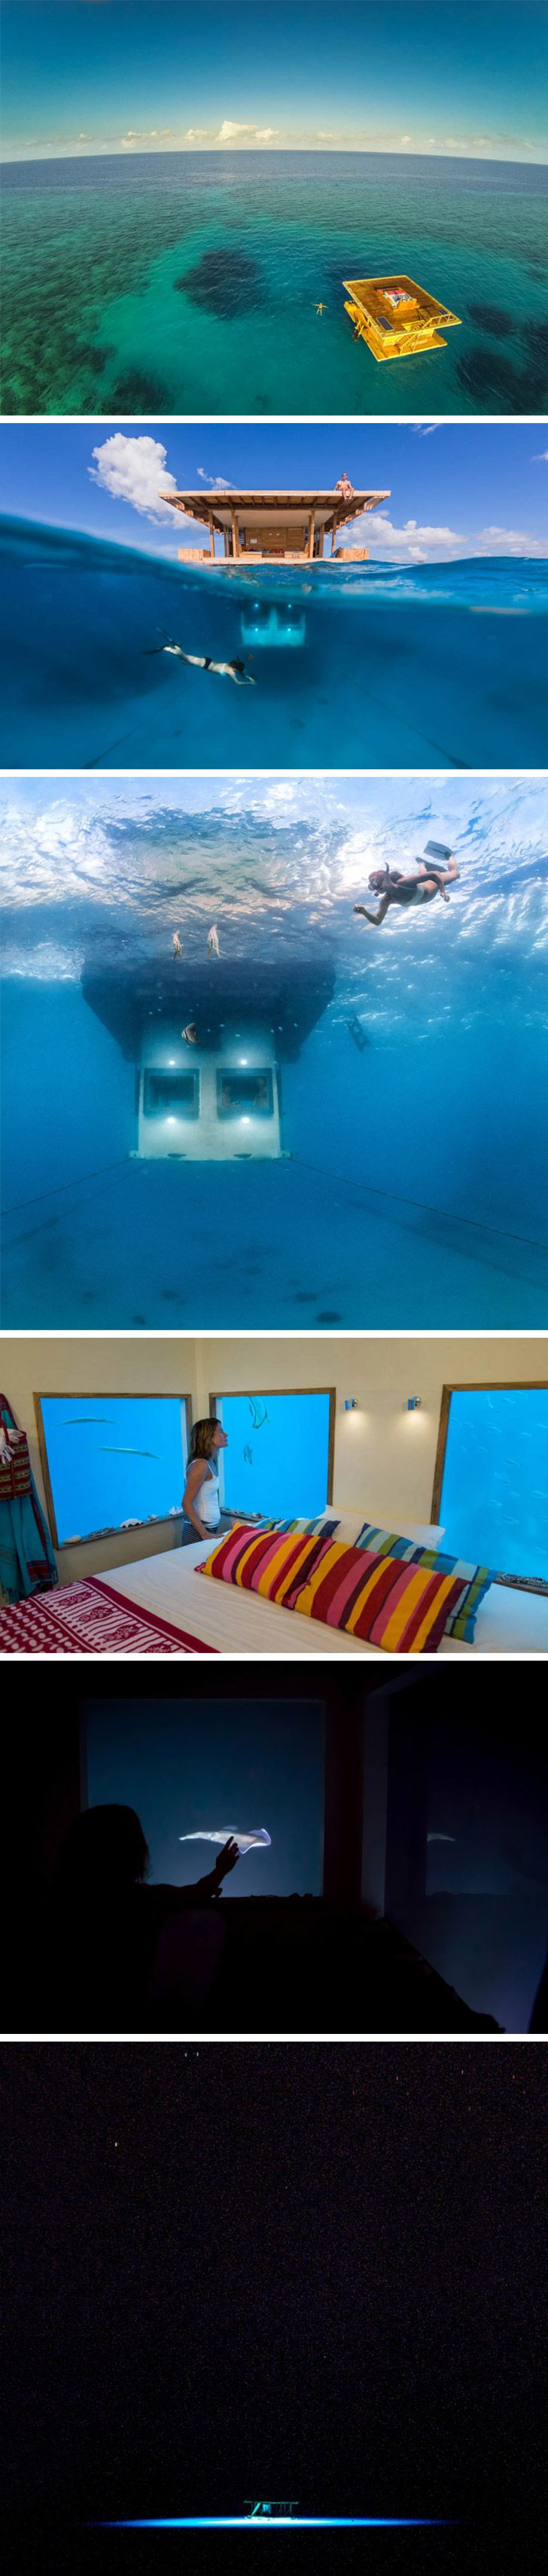 Underwater floating hotel room in Zanzibar.